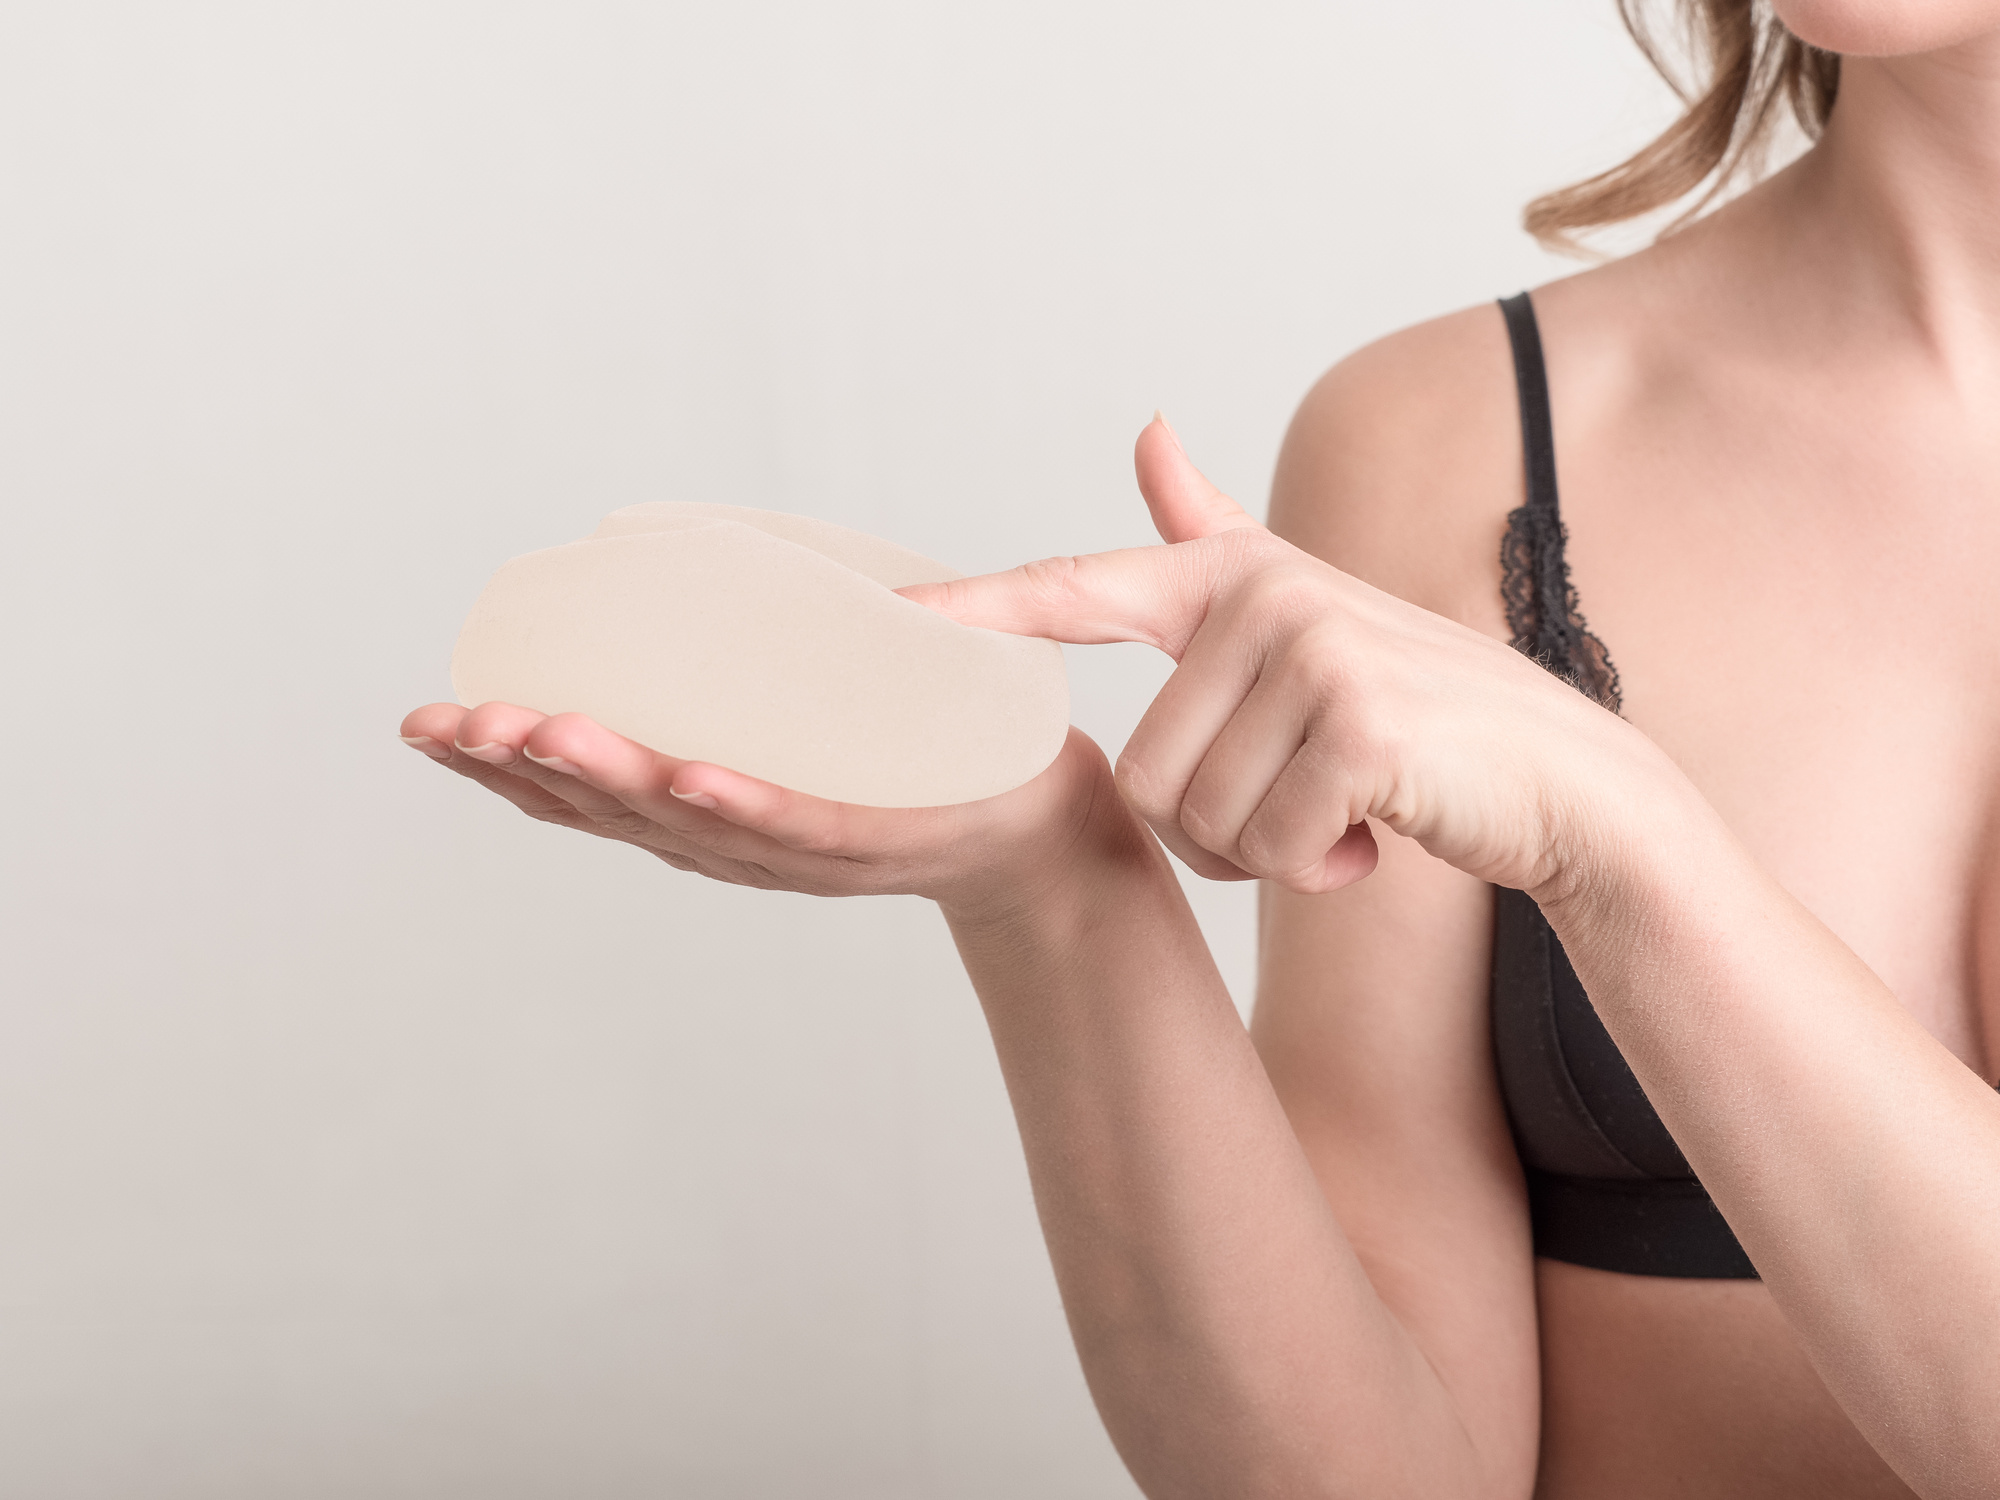 Simply the Breast! 3 Incredible Alternatives to Breast Implants